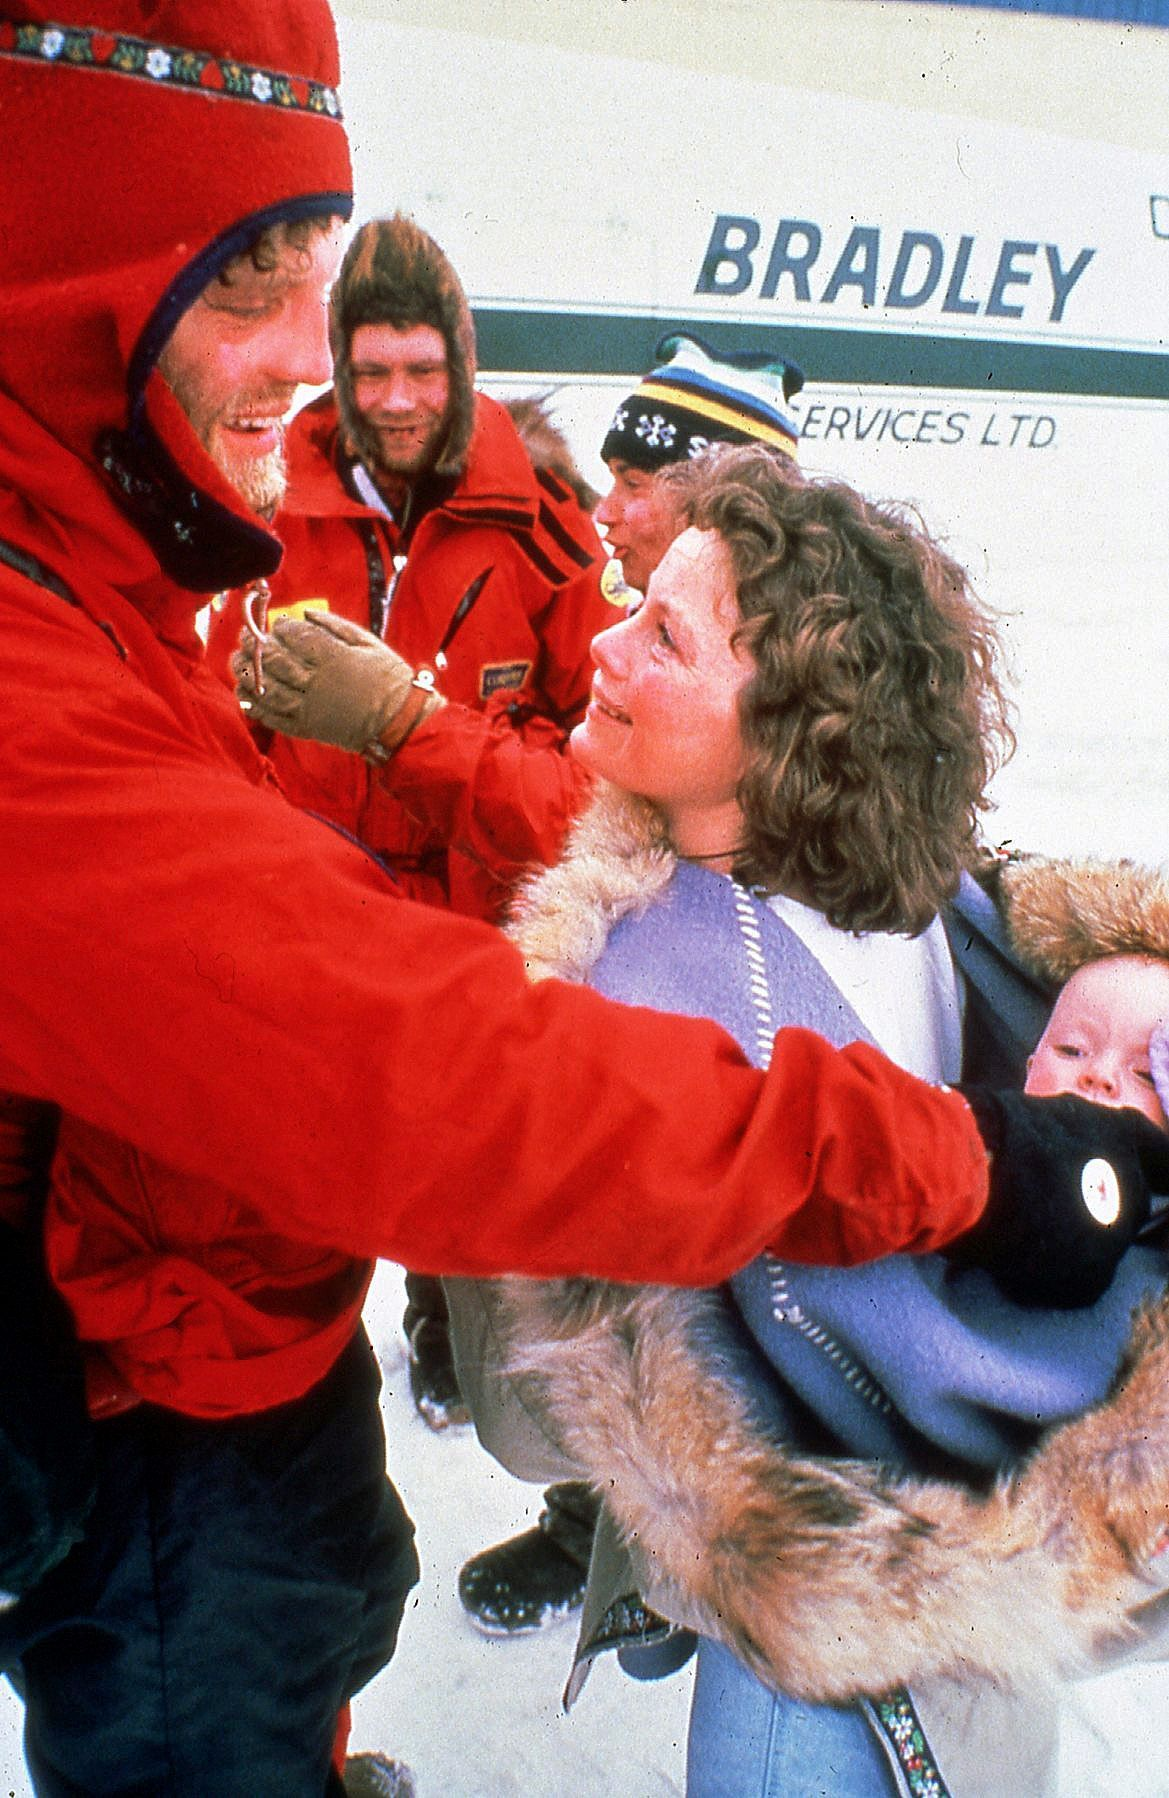 Paul meeting his wife, sue, and their baby after finishing a North Pole trip.